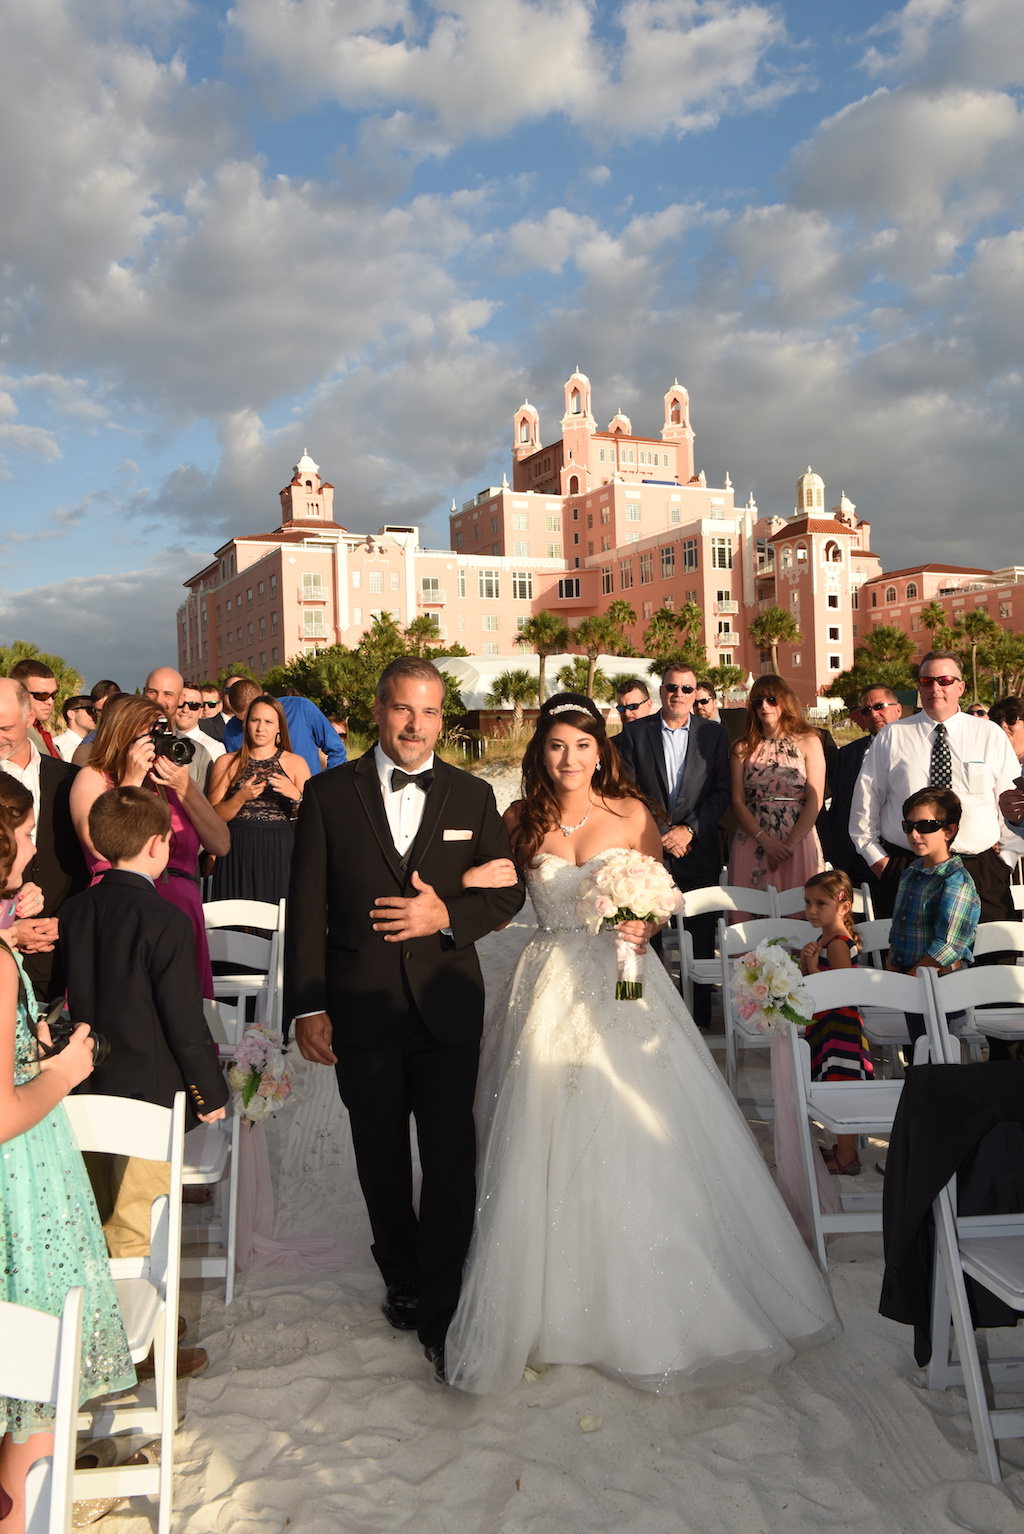 Fairytale Beach Wedding Ceremony Portrait, Bride in Strapless A Line Tulle Skirt Wedding Dress with White Rose Bouquet | St Pete Beach Hotel Wedding Venue The Don CeSar